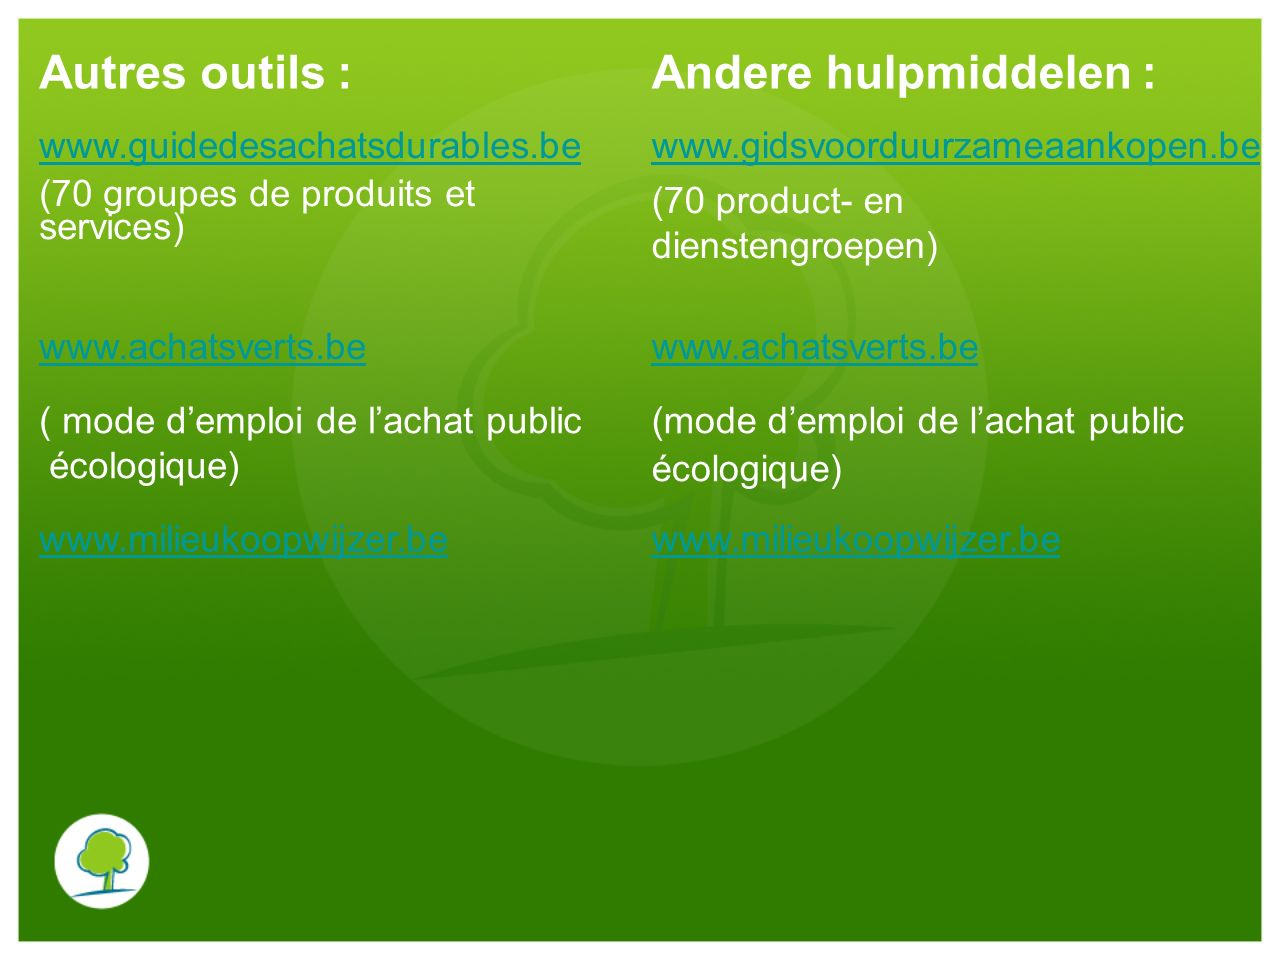 Autres outils : Andere hulpmiddelen : www.guidedesachatsdurables.be